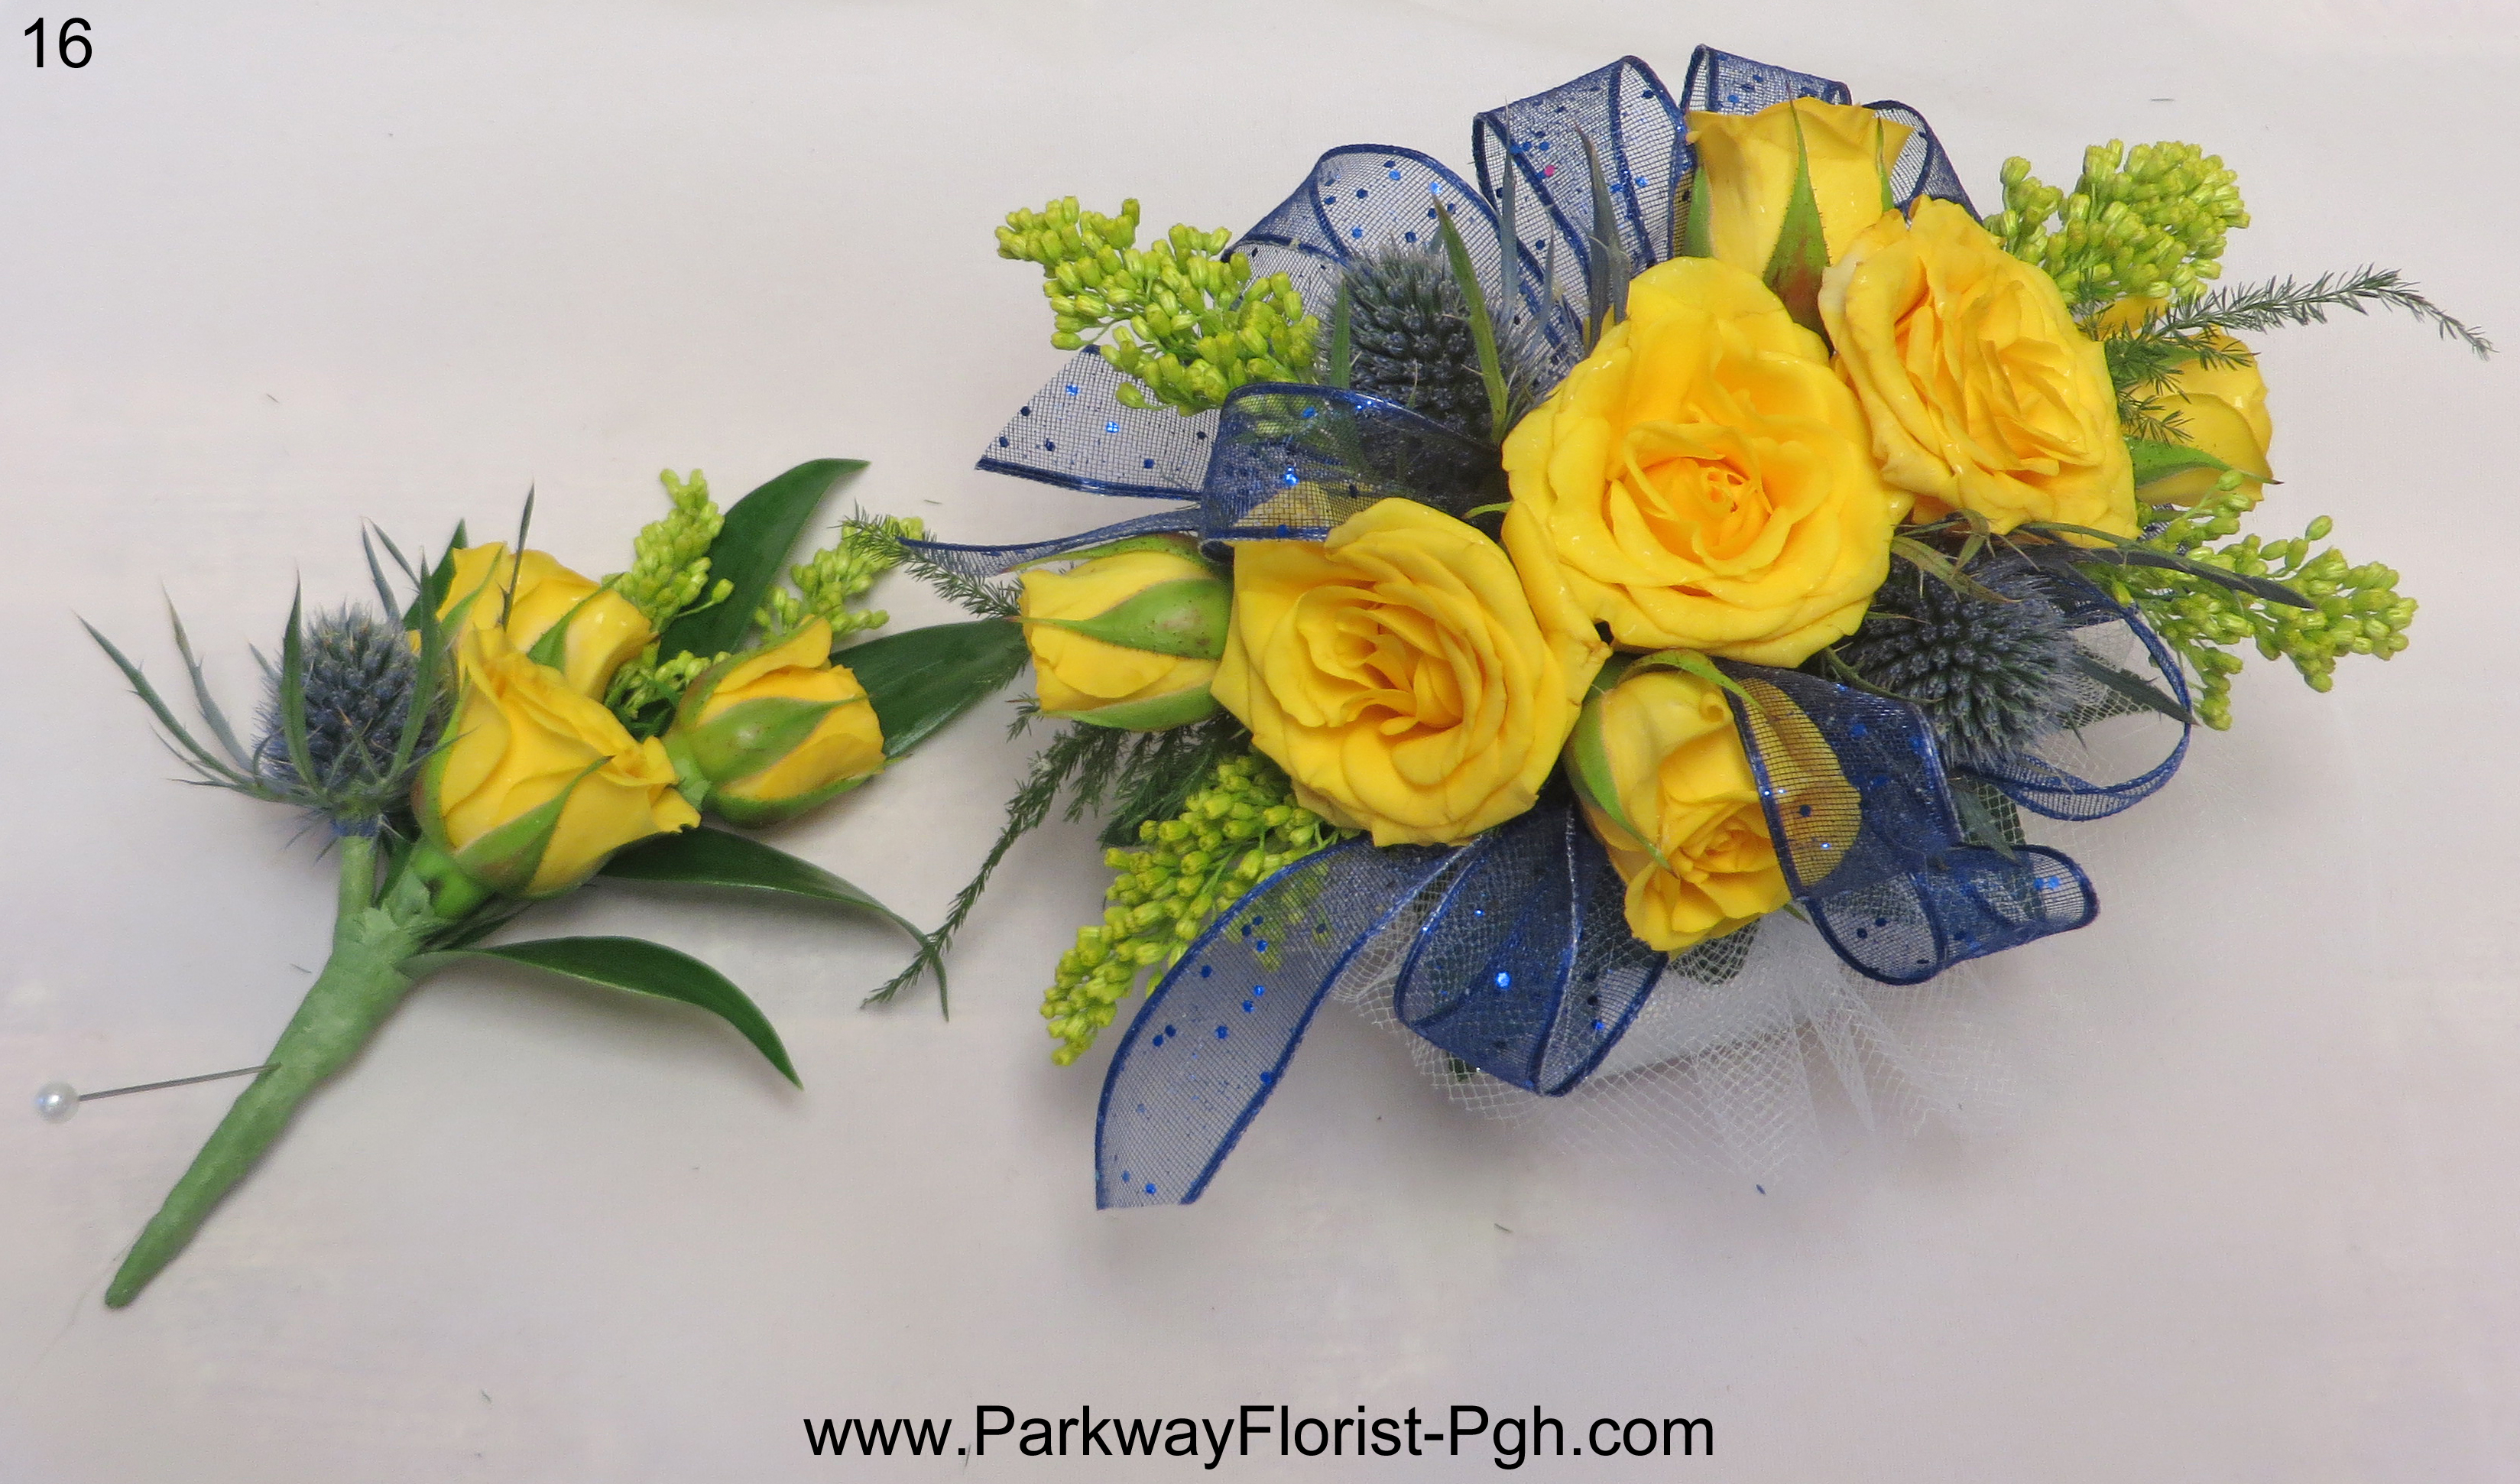 Prom flowers parkway florist pittsburgh blog advance ordering for prom flowers is required generally a minimum of 5 days in advance of your prom date izmirmasajfo